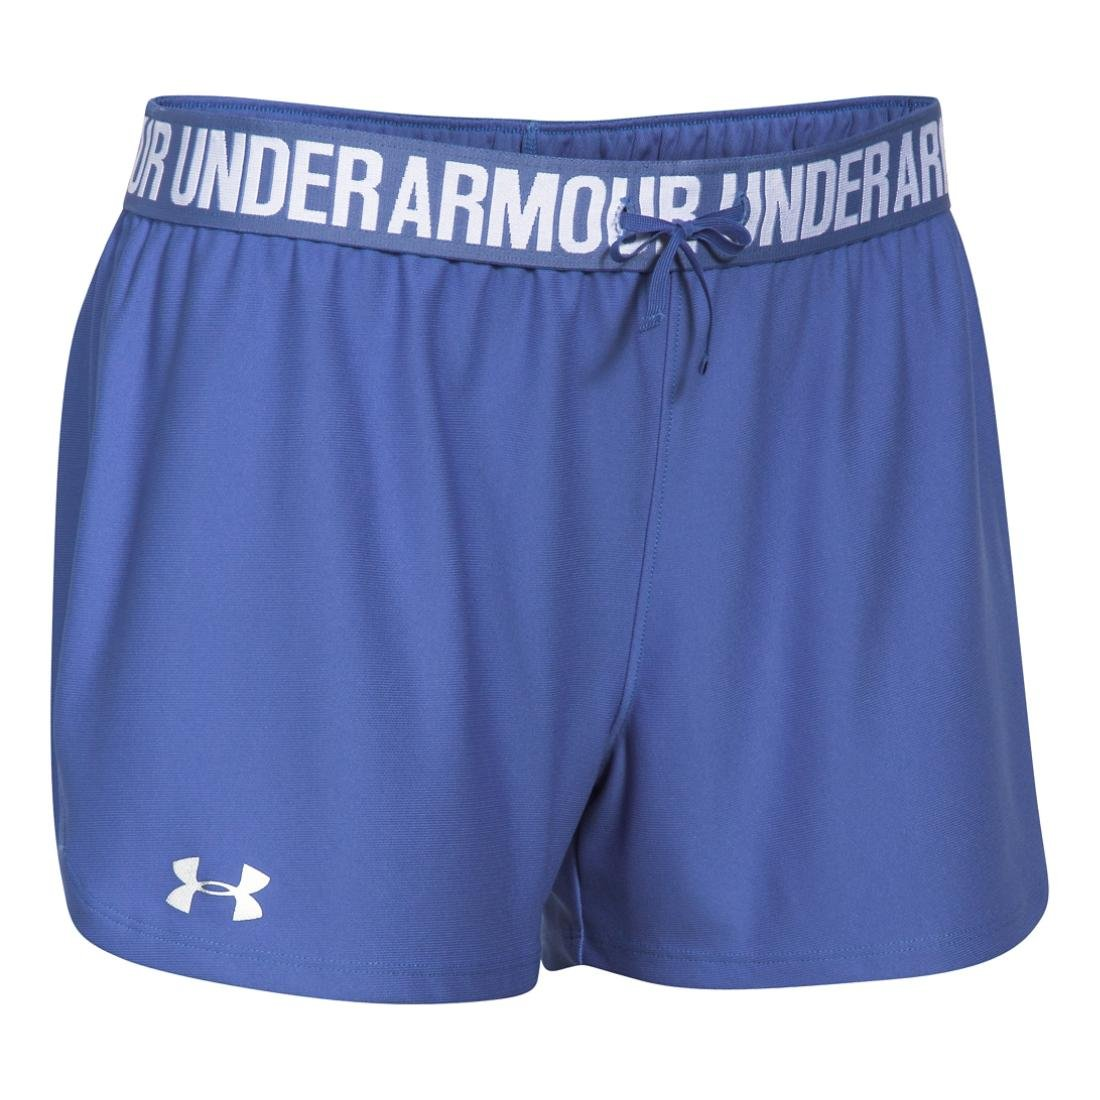 Under Armour Womens Play Up Shorts Under Armour Apparel 1264264